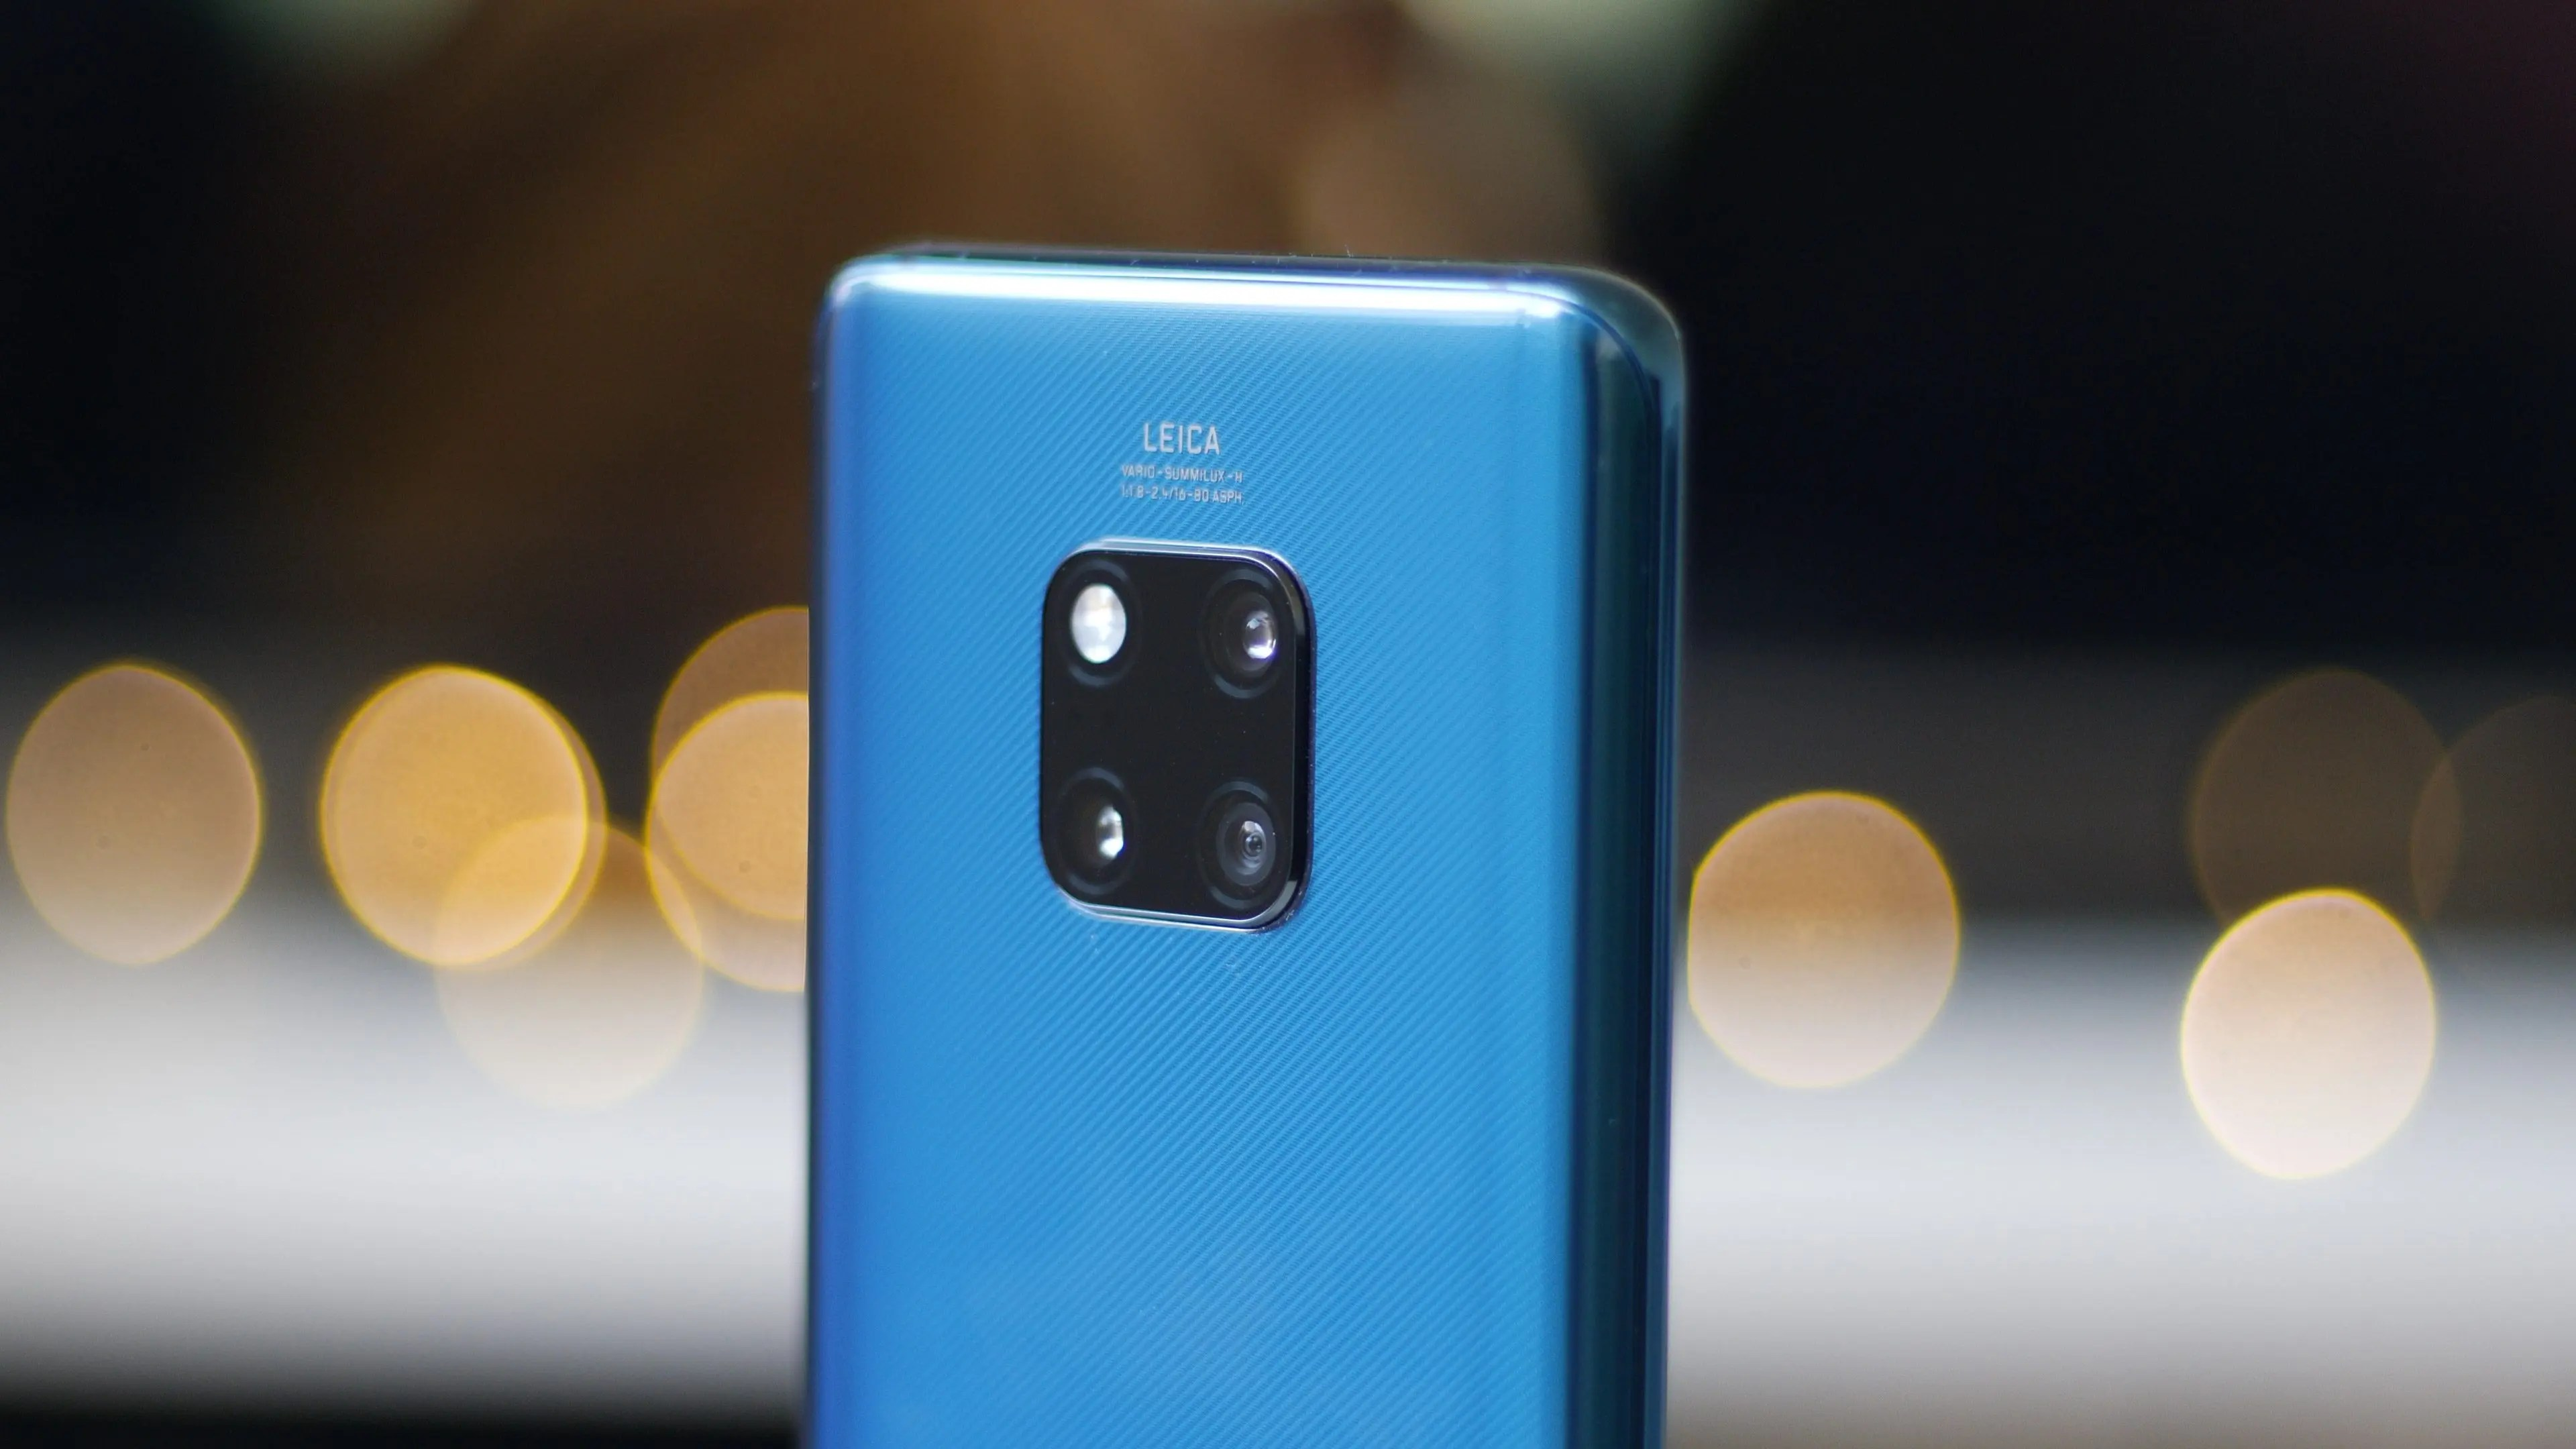 Huawei's Mate 20 Pro is breaking records for European pre-orders